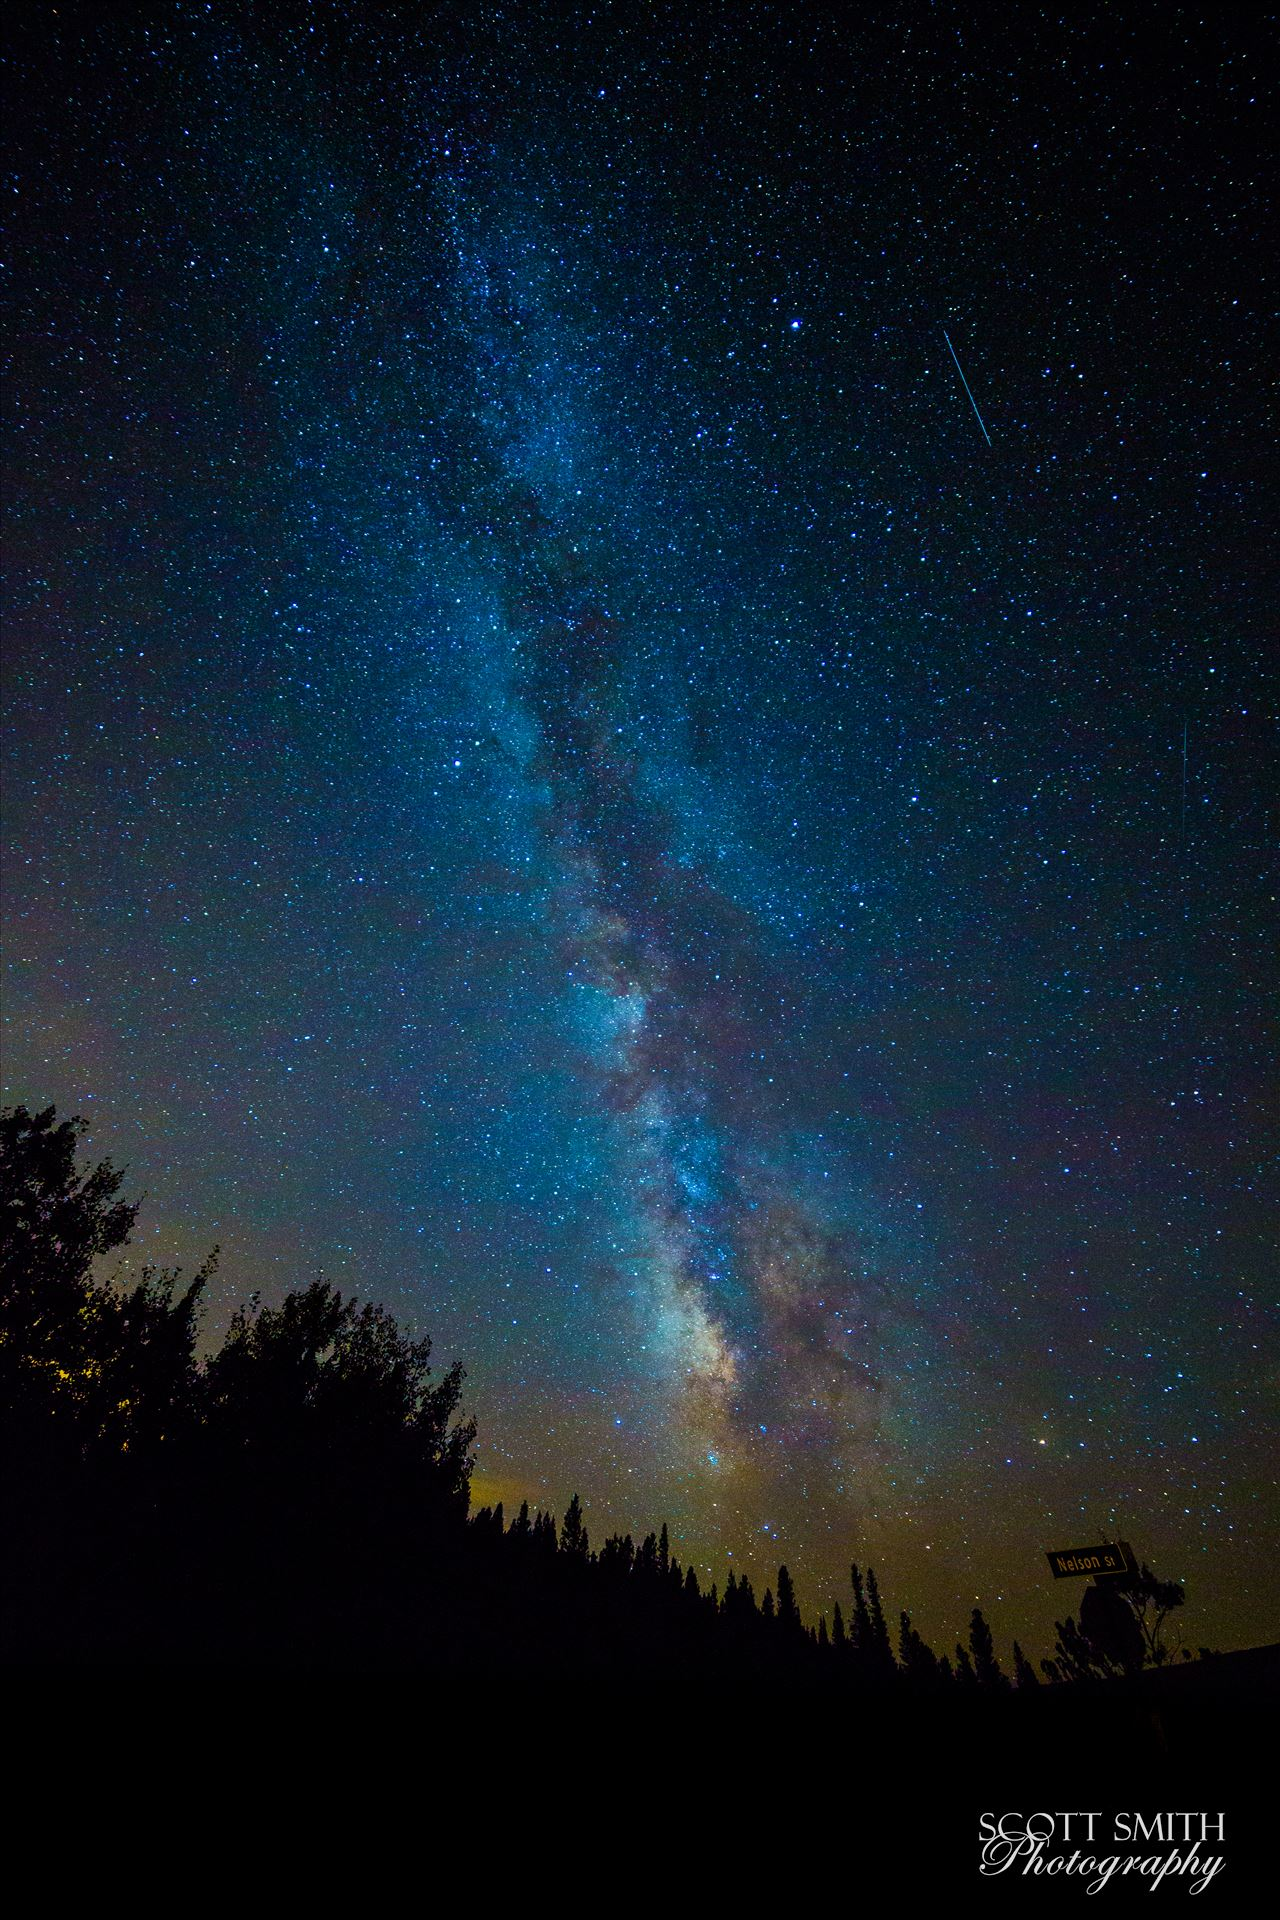 Milky Way and Perseids from Ward - Another shot of the Milky Way and the Perseid meteor shower, from Ward, Colorado. by D Scott Smith